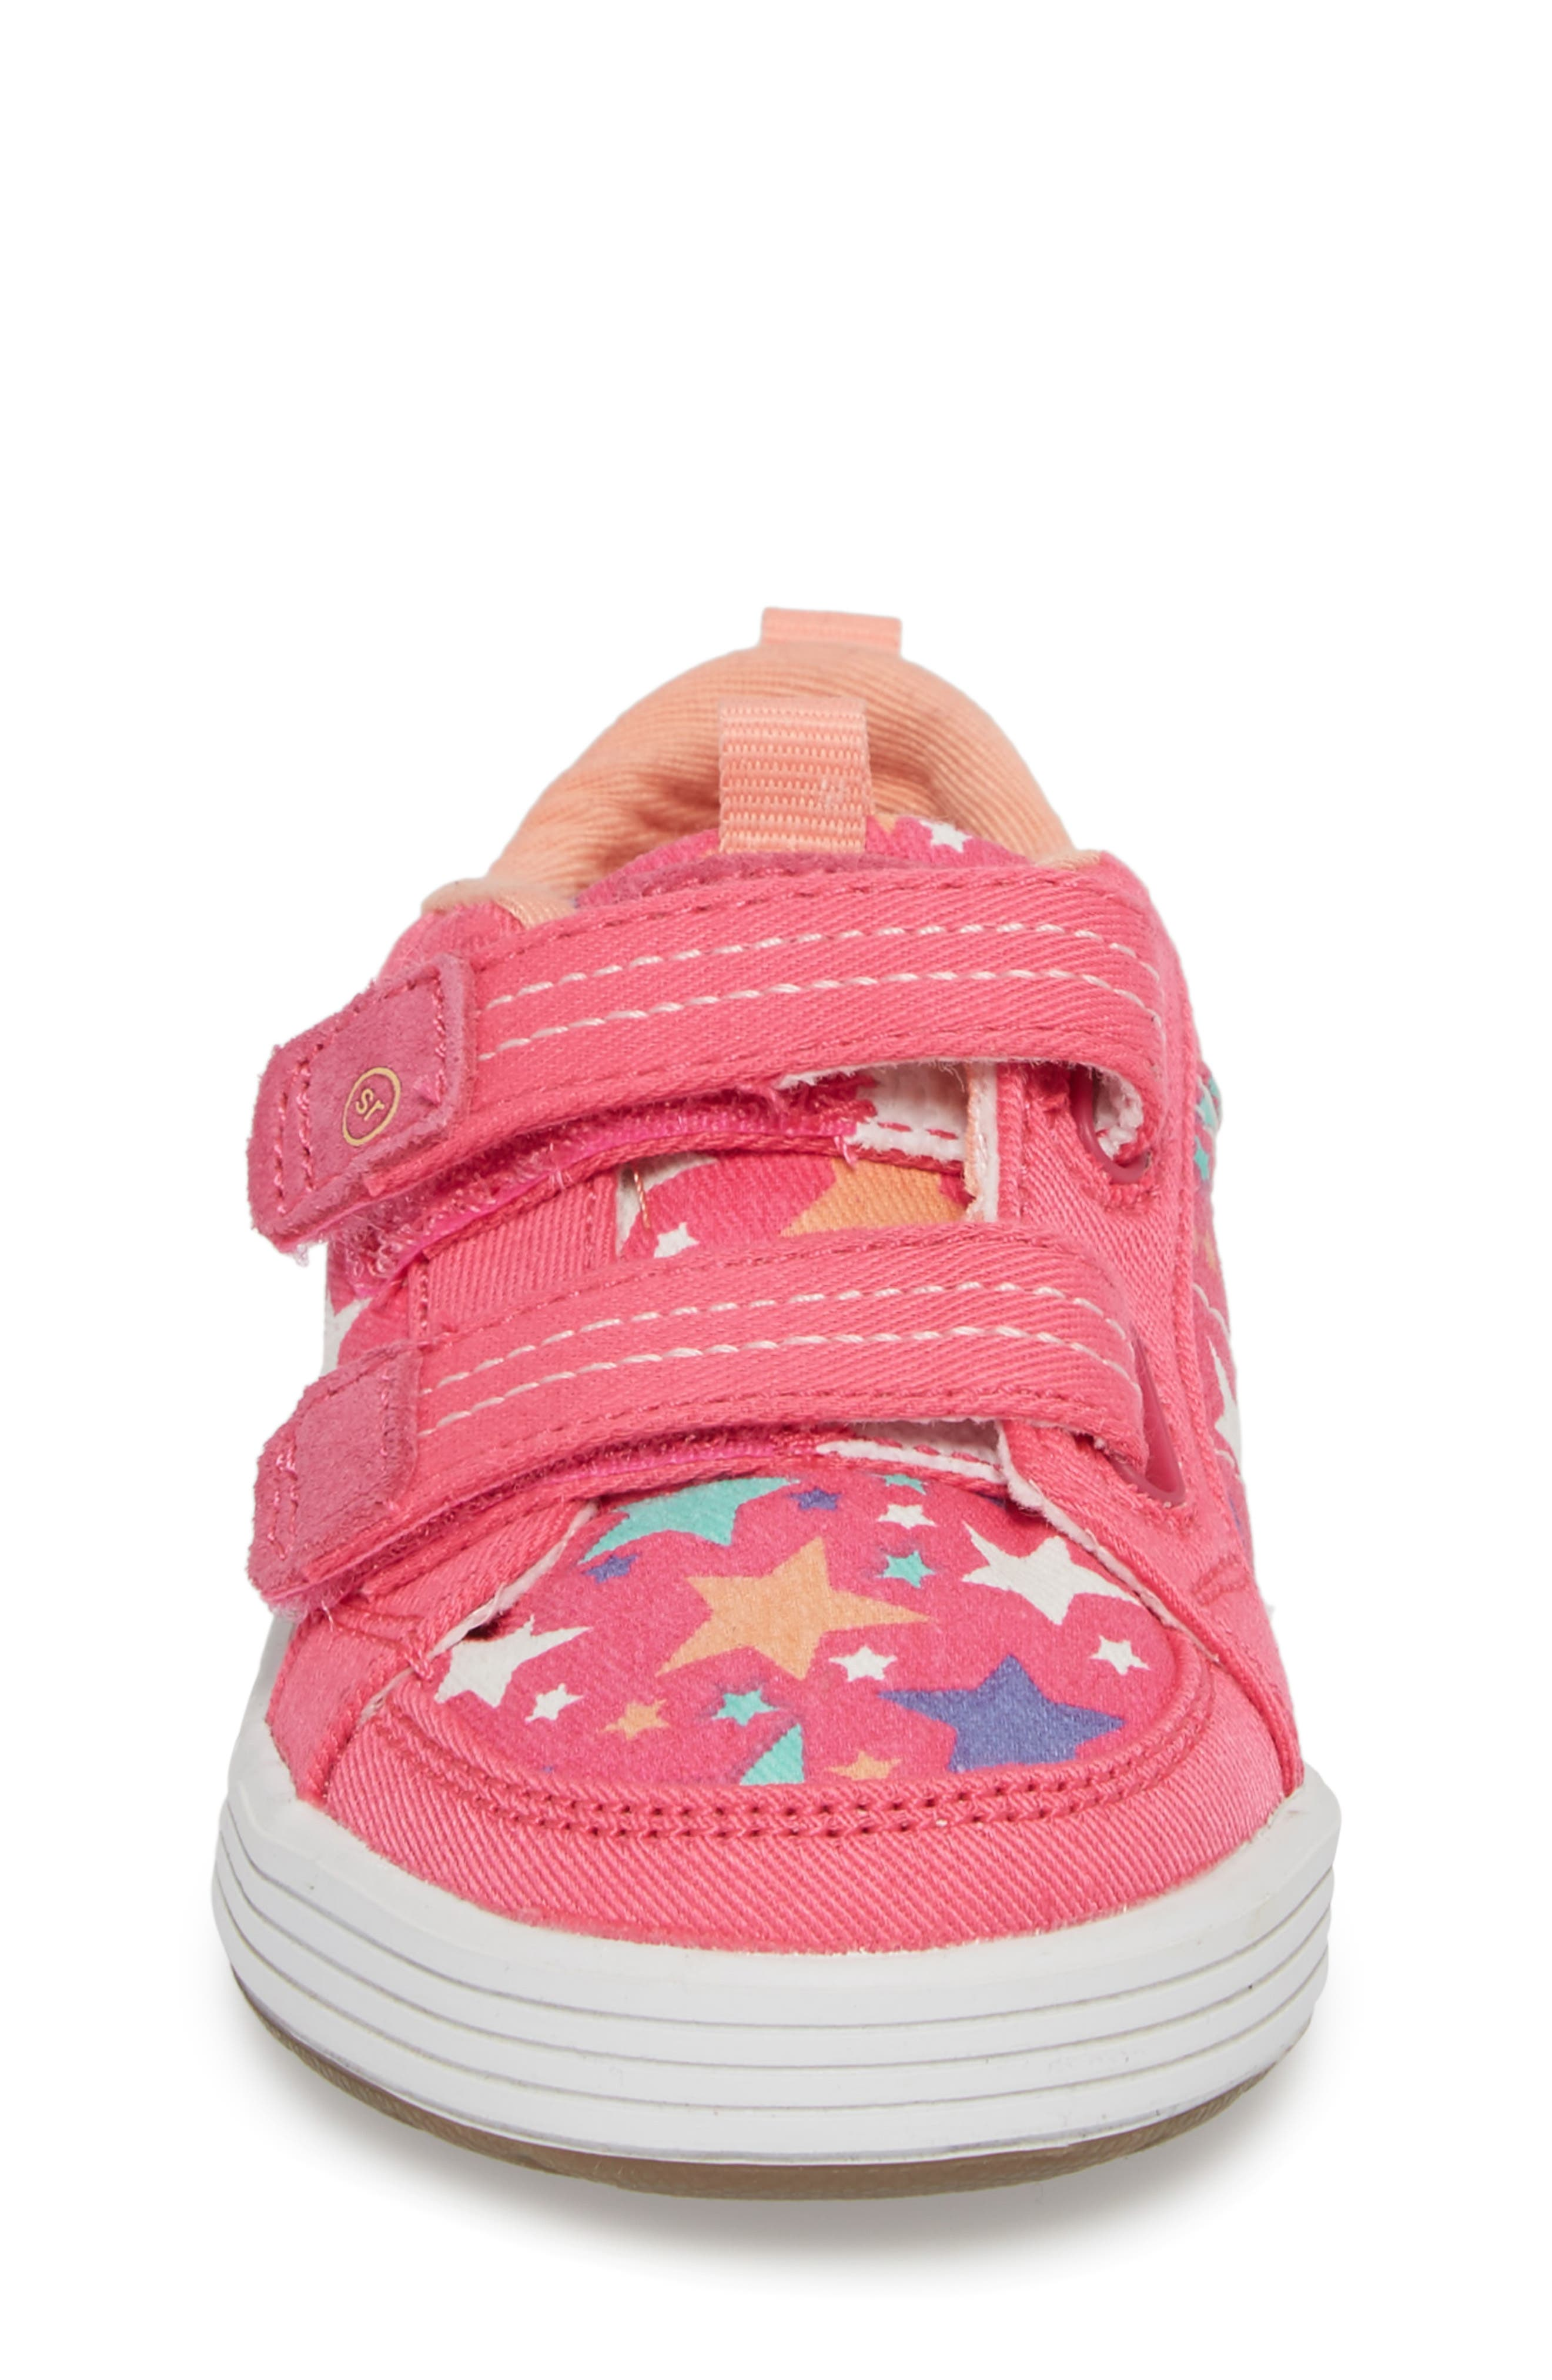 Logan Patterned Sneaker,                             Alternate thumbnail 4, color,                             Pink Star